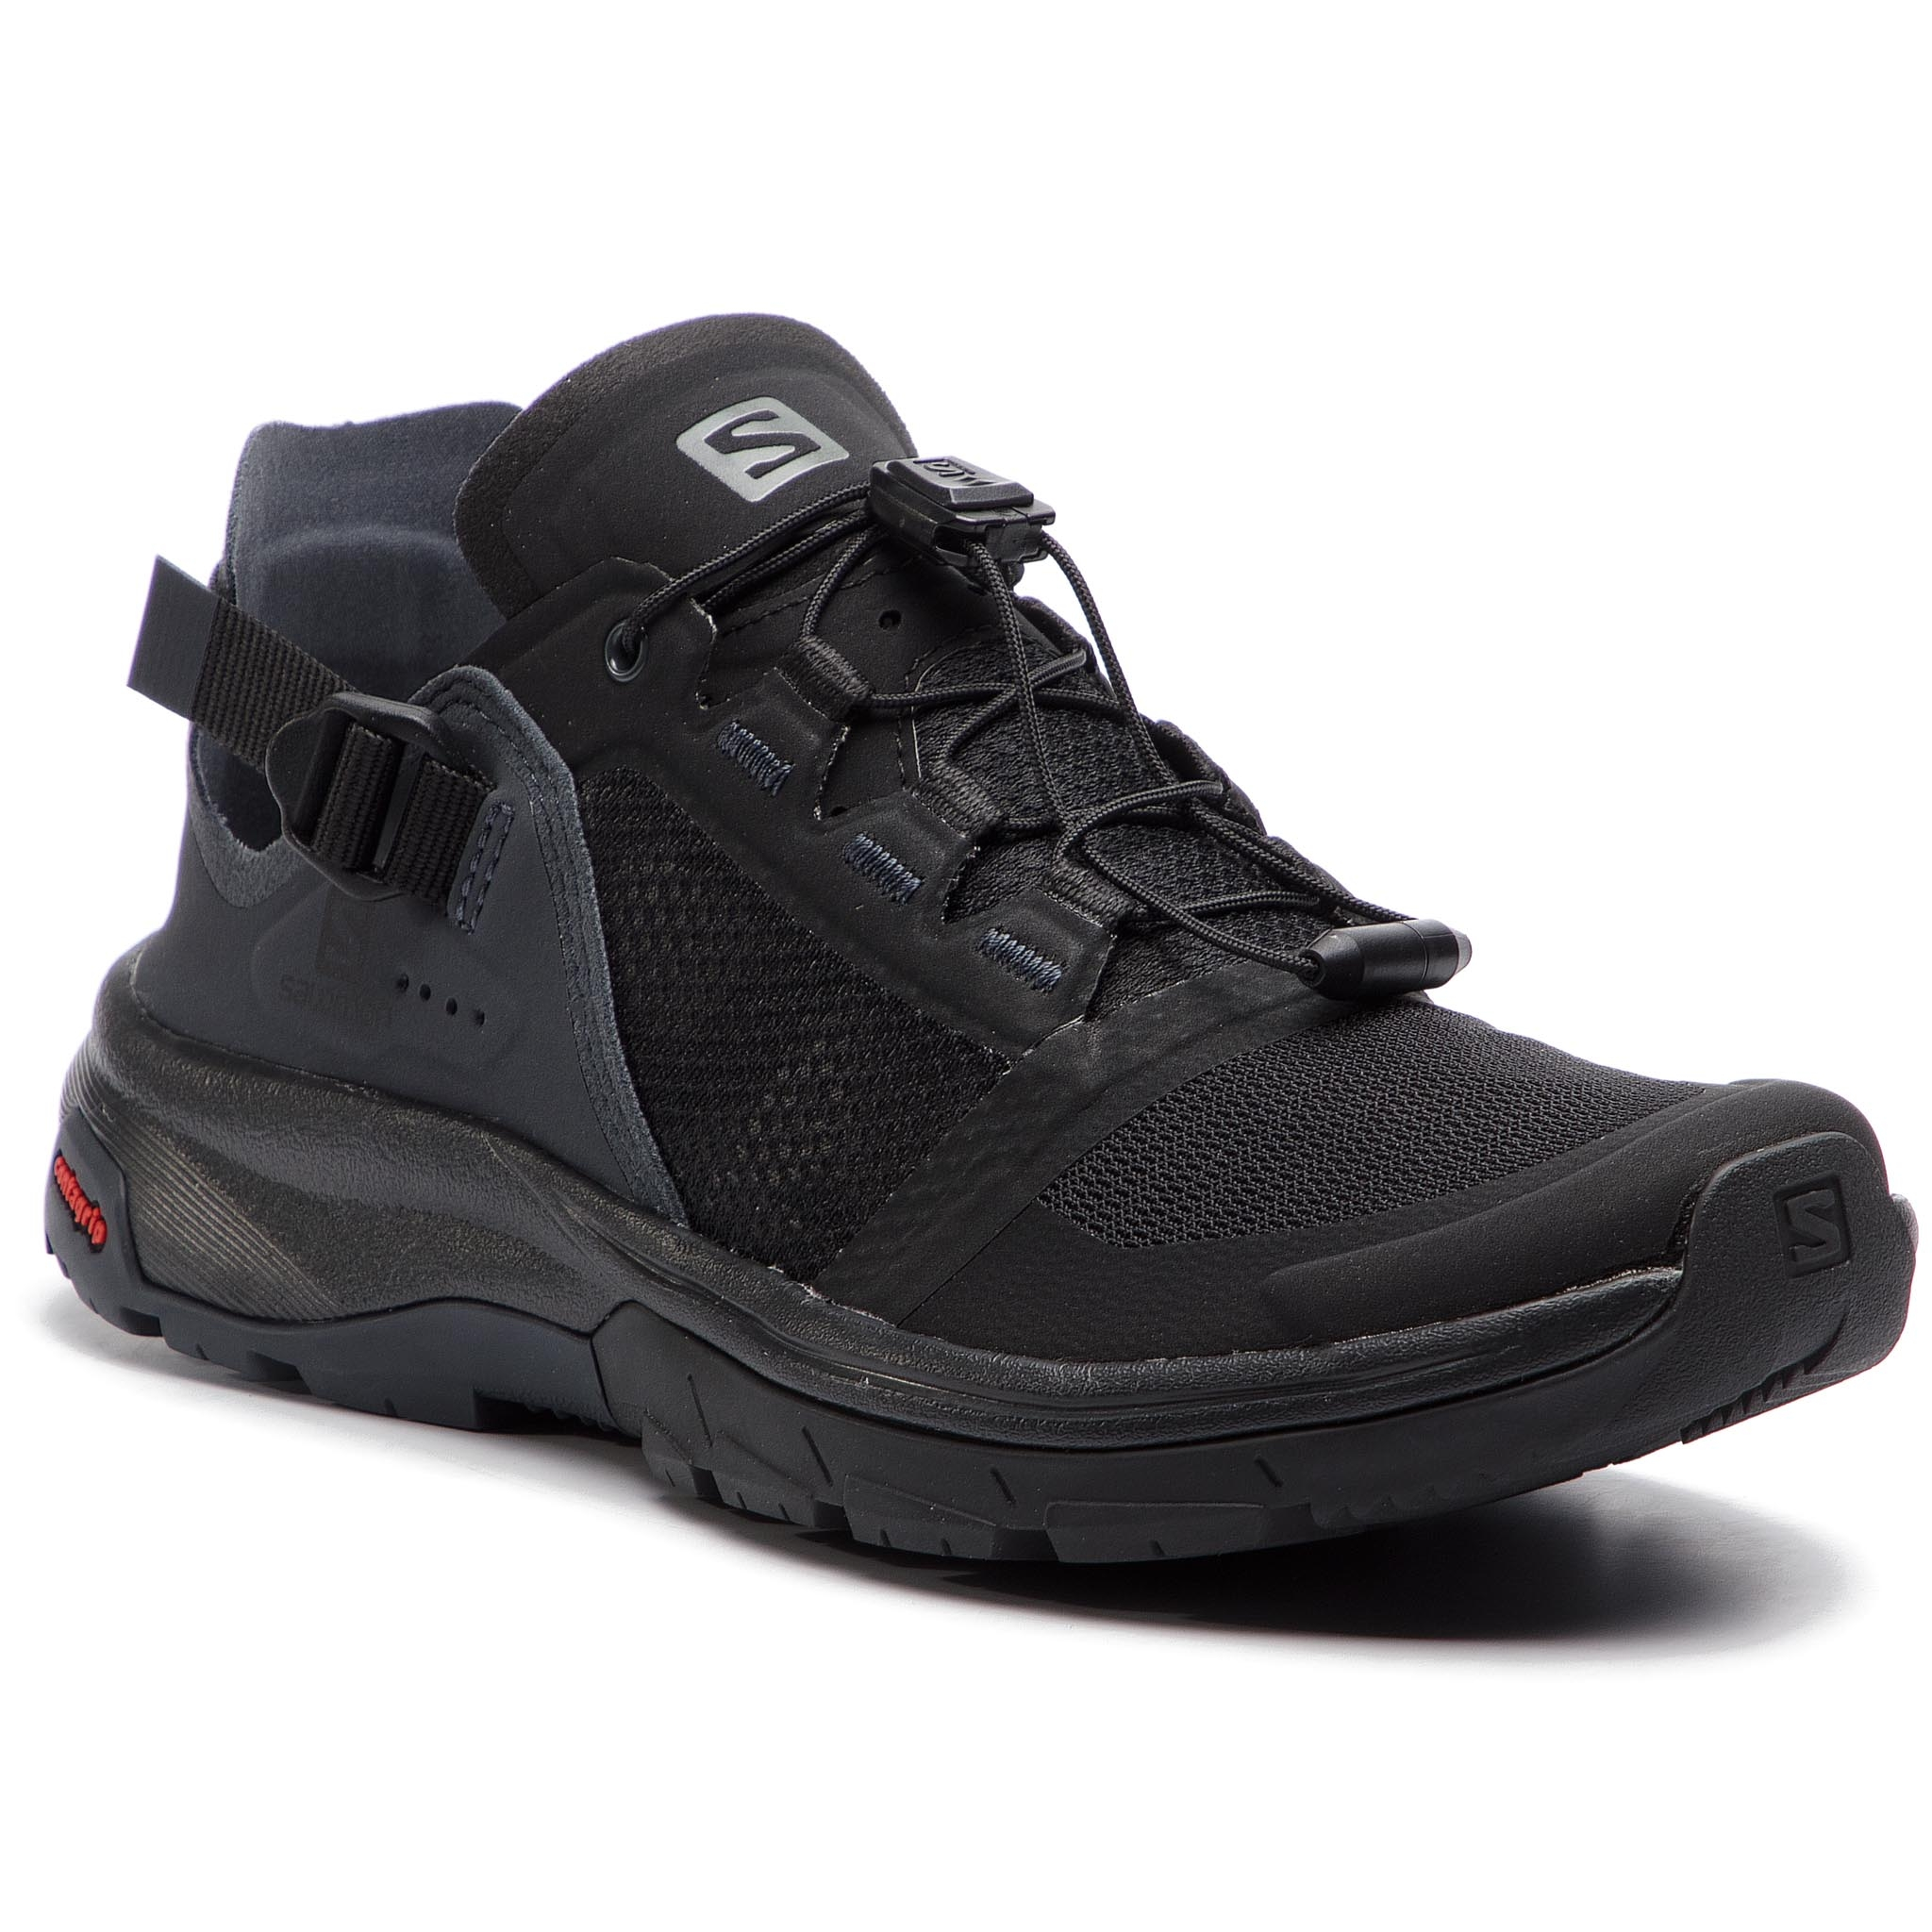 3eddb1243ac54 Trekker Boots SALOMON Techamphibian 4 W 406813 22 V0 Black Ebony Quiet Shade